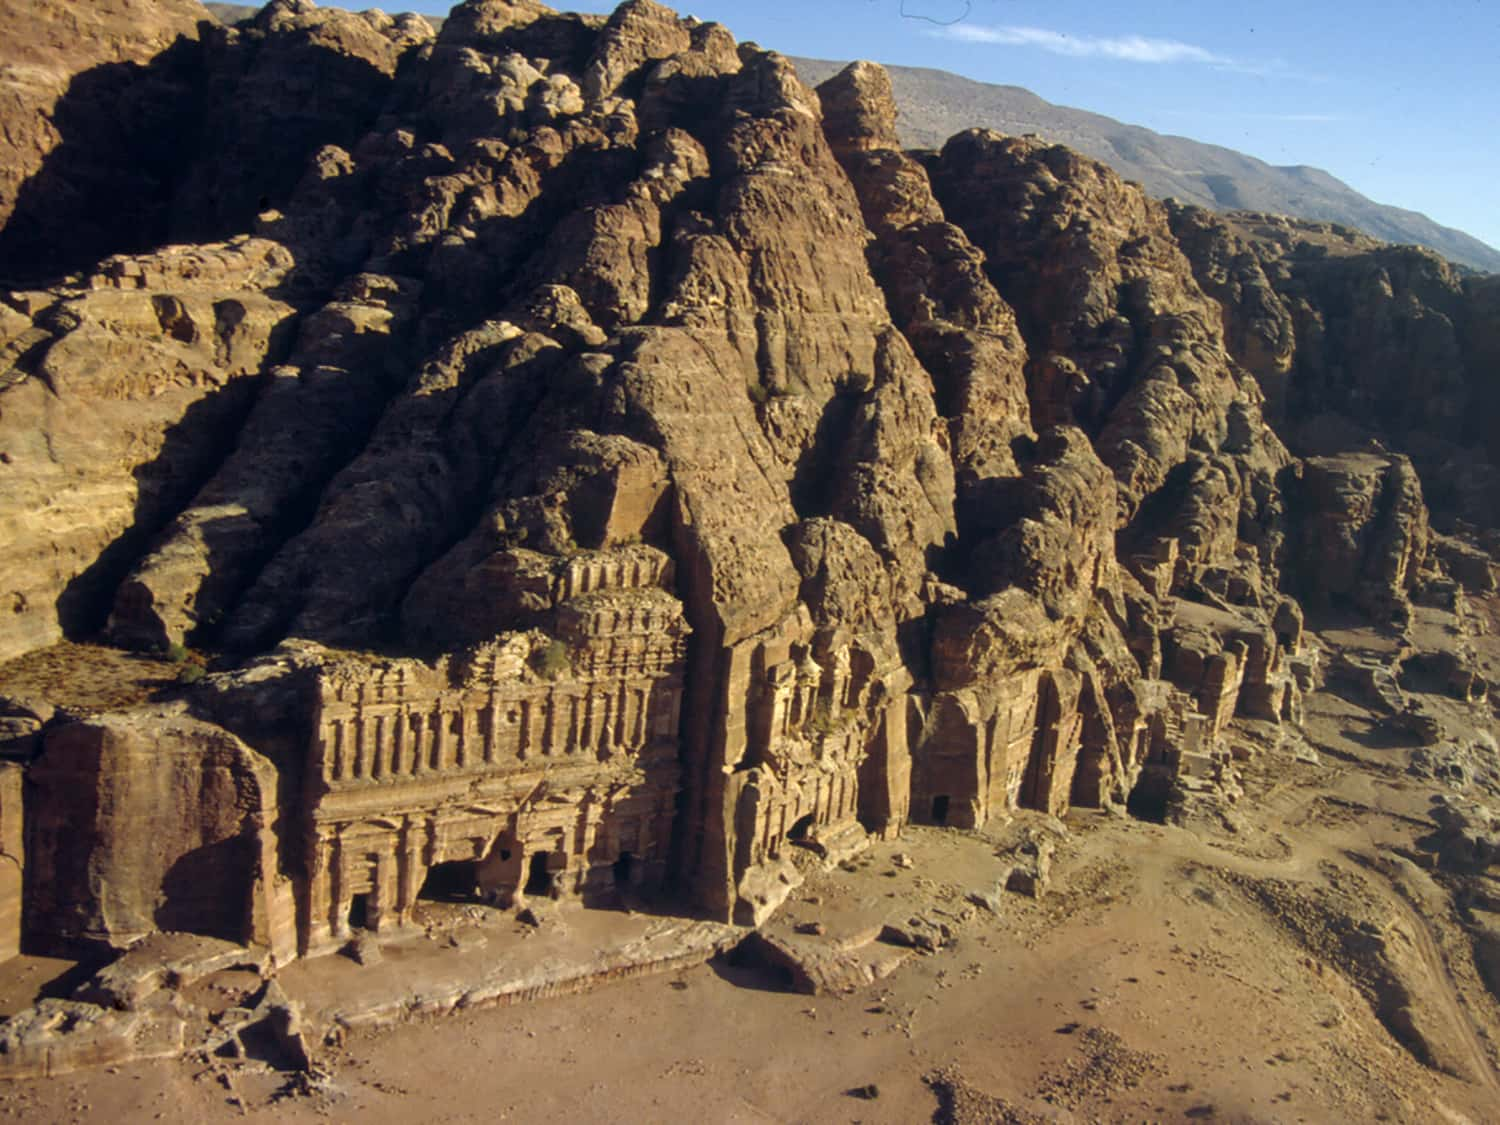 Royal Tombs carved into the cliffs